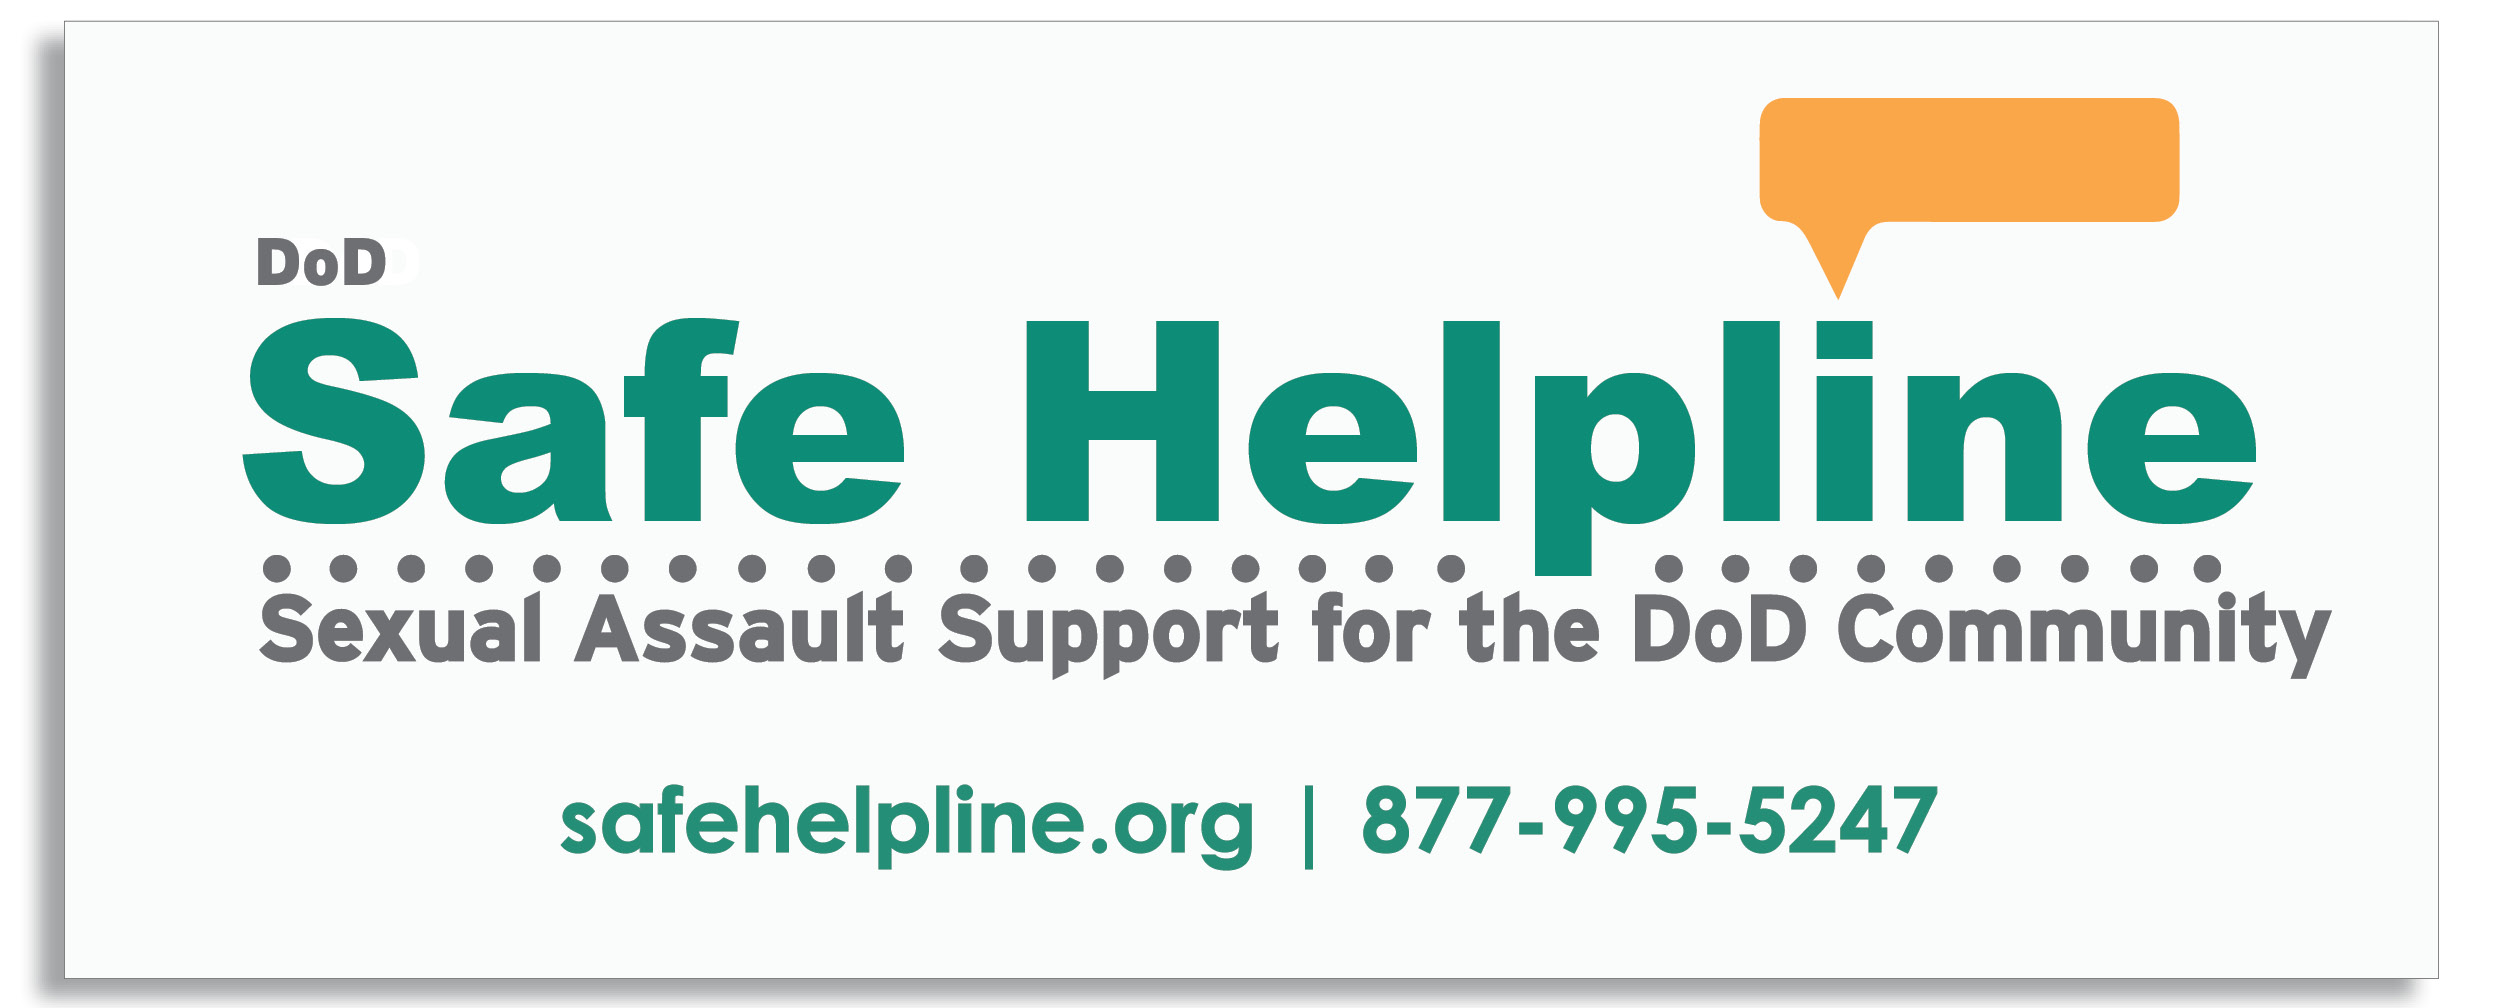 A graphic representing the Safe Helpline phone number, pease call 877-995-5247.